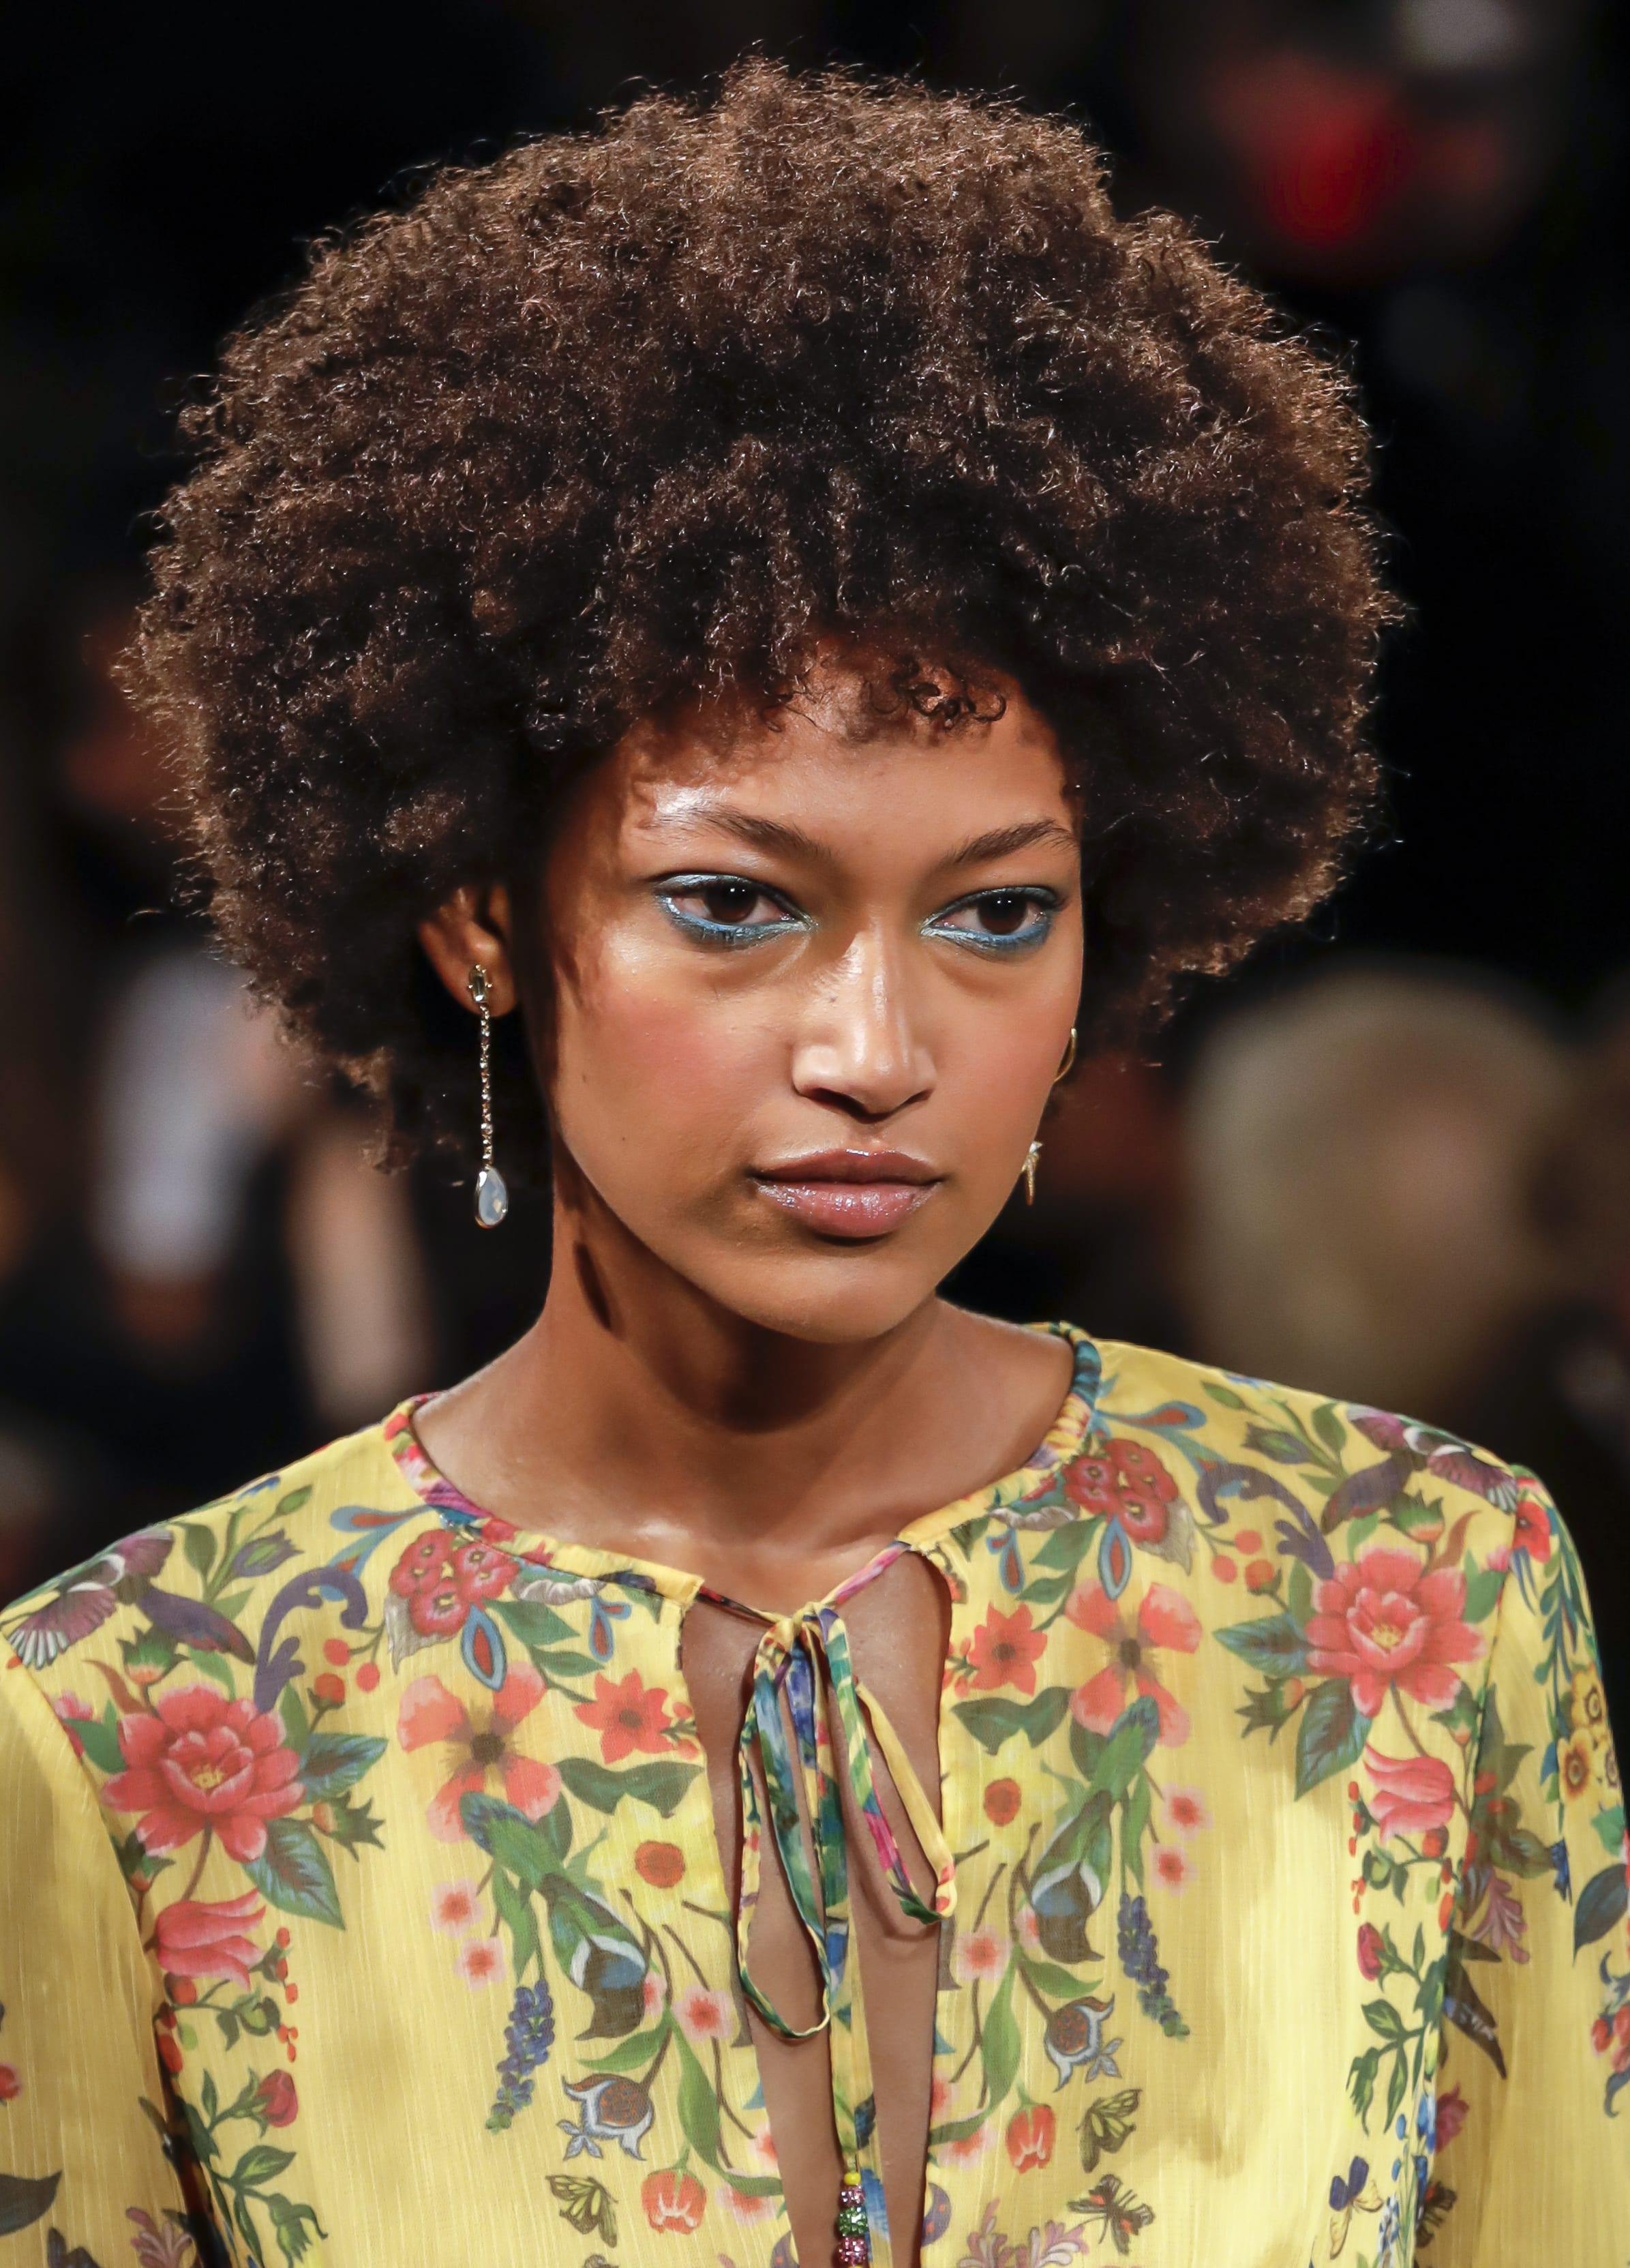 High Round Afro with Short Bangs